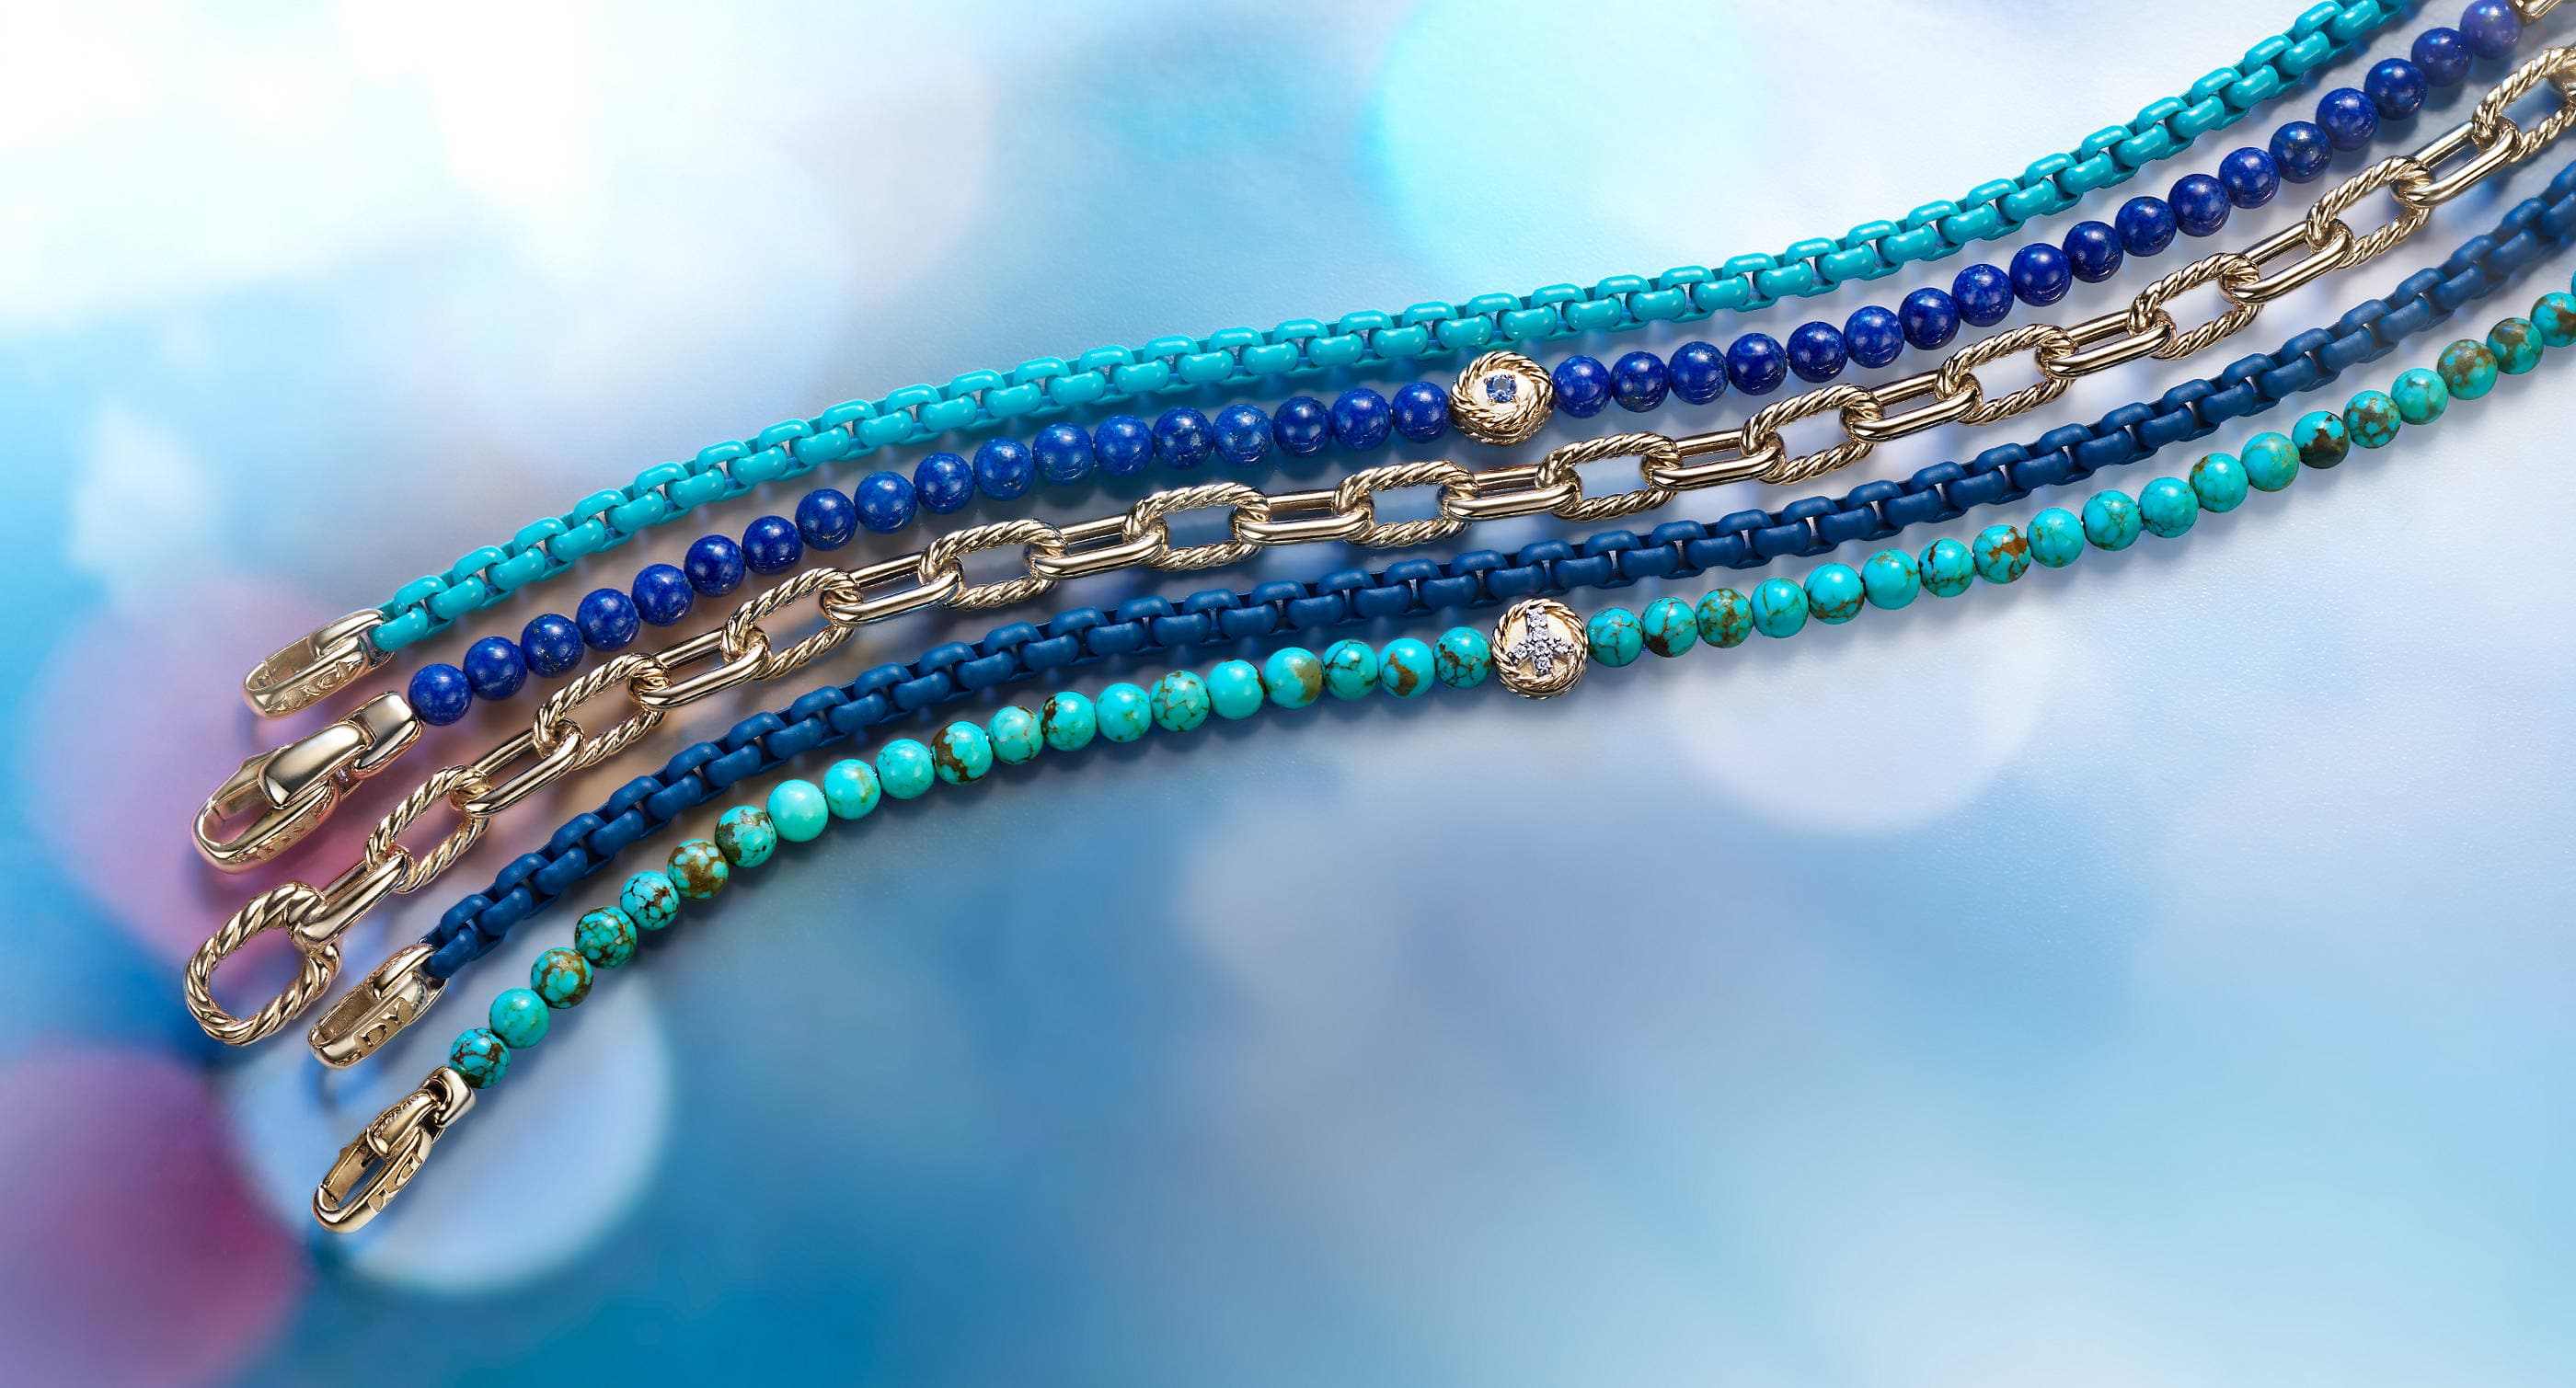 An image of four David Yurman women's blue, gold and turquoise-hued chain and beaded bracelets lined up in a vertical stack atop a blue background with colorful reflections of light. The jewelry is crafted from 18K yellow gold with or without acrylic-coated stainless steel, lapis lazuli beads, turquoise beads, pavé diamonds and blue sapphires.